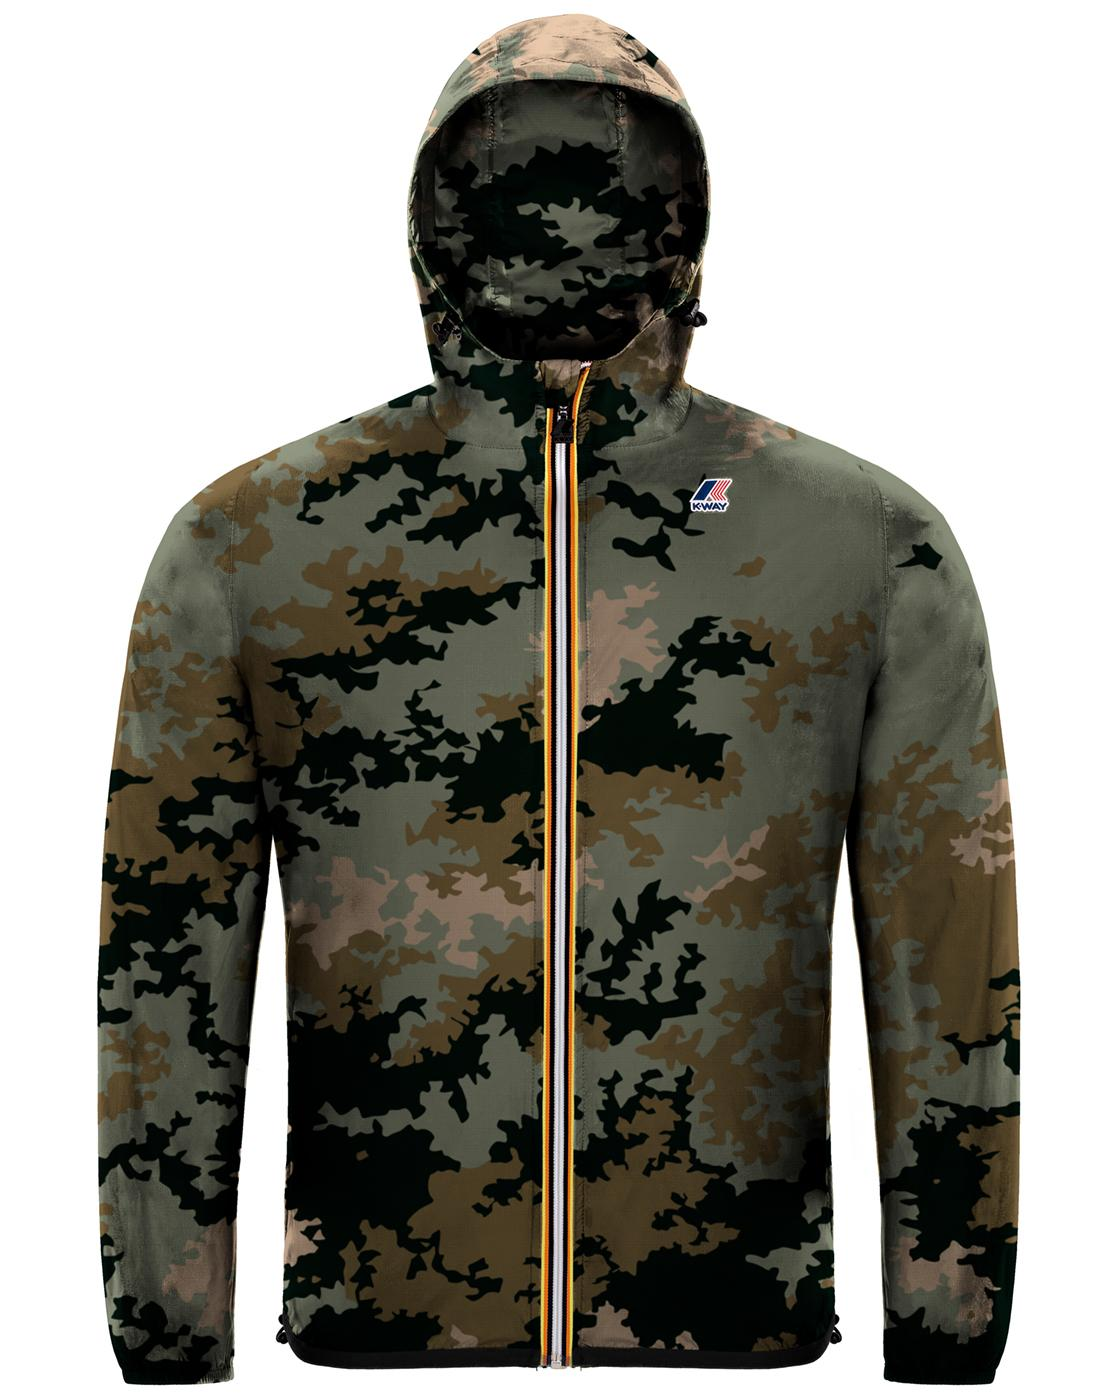 Claude K-WAY Men's Retro Pack-A-Mac Cagoule DC